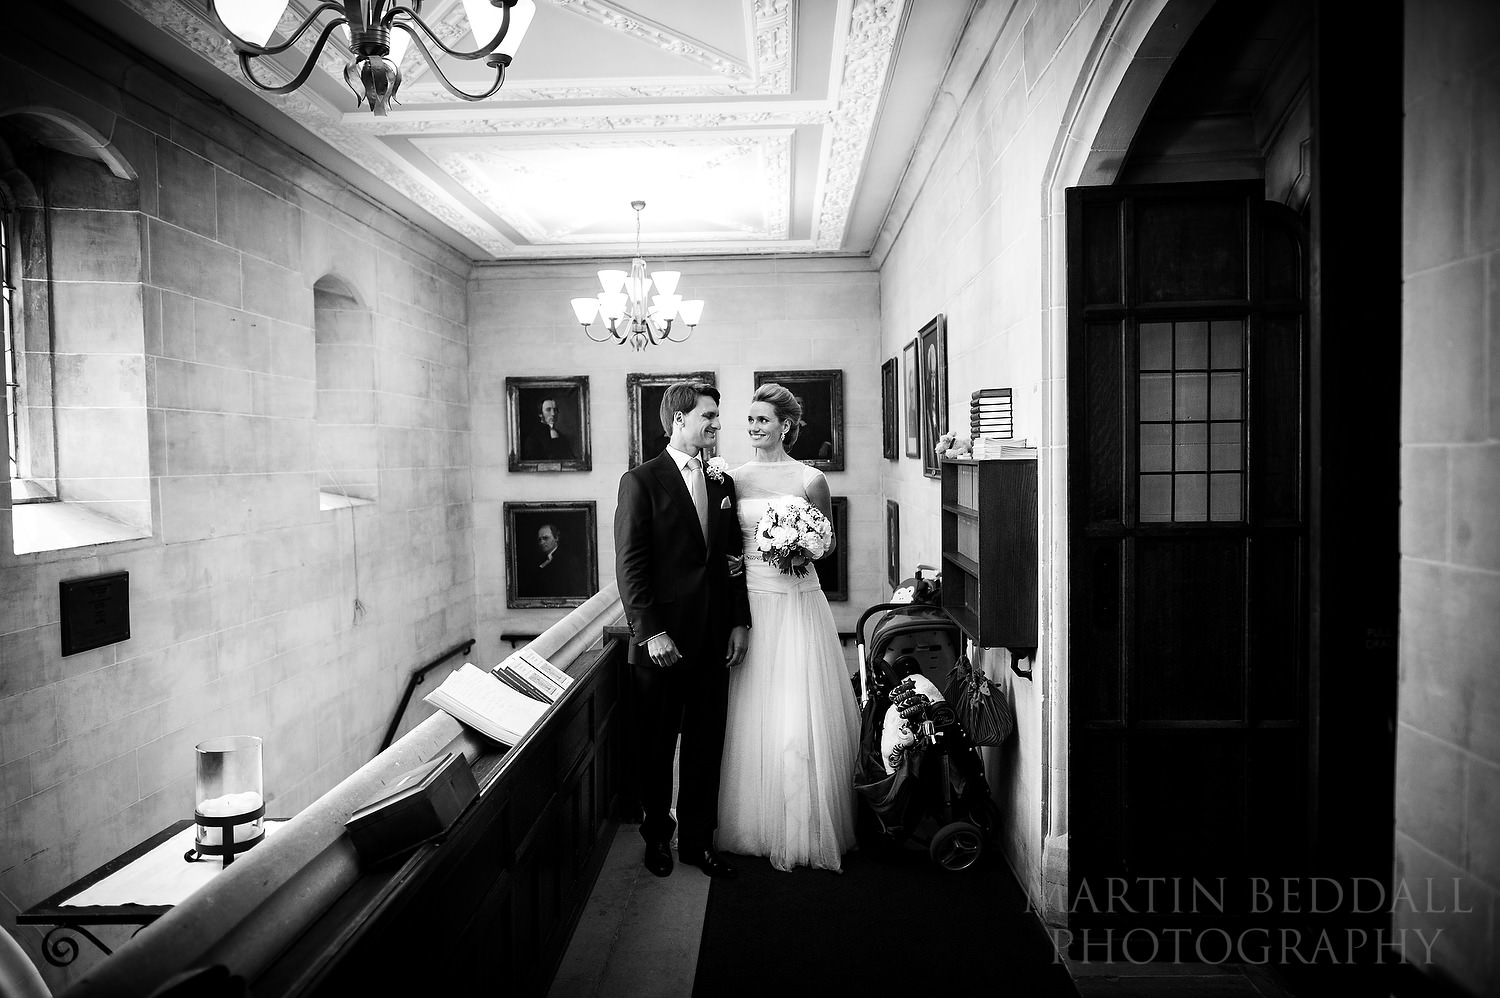 Bride and groom about to enter for the wedding ceremony at Ulrika Eleonora church